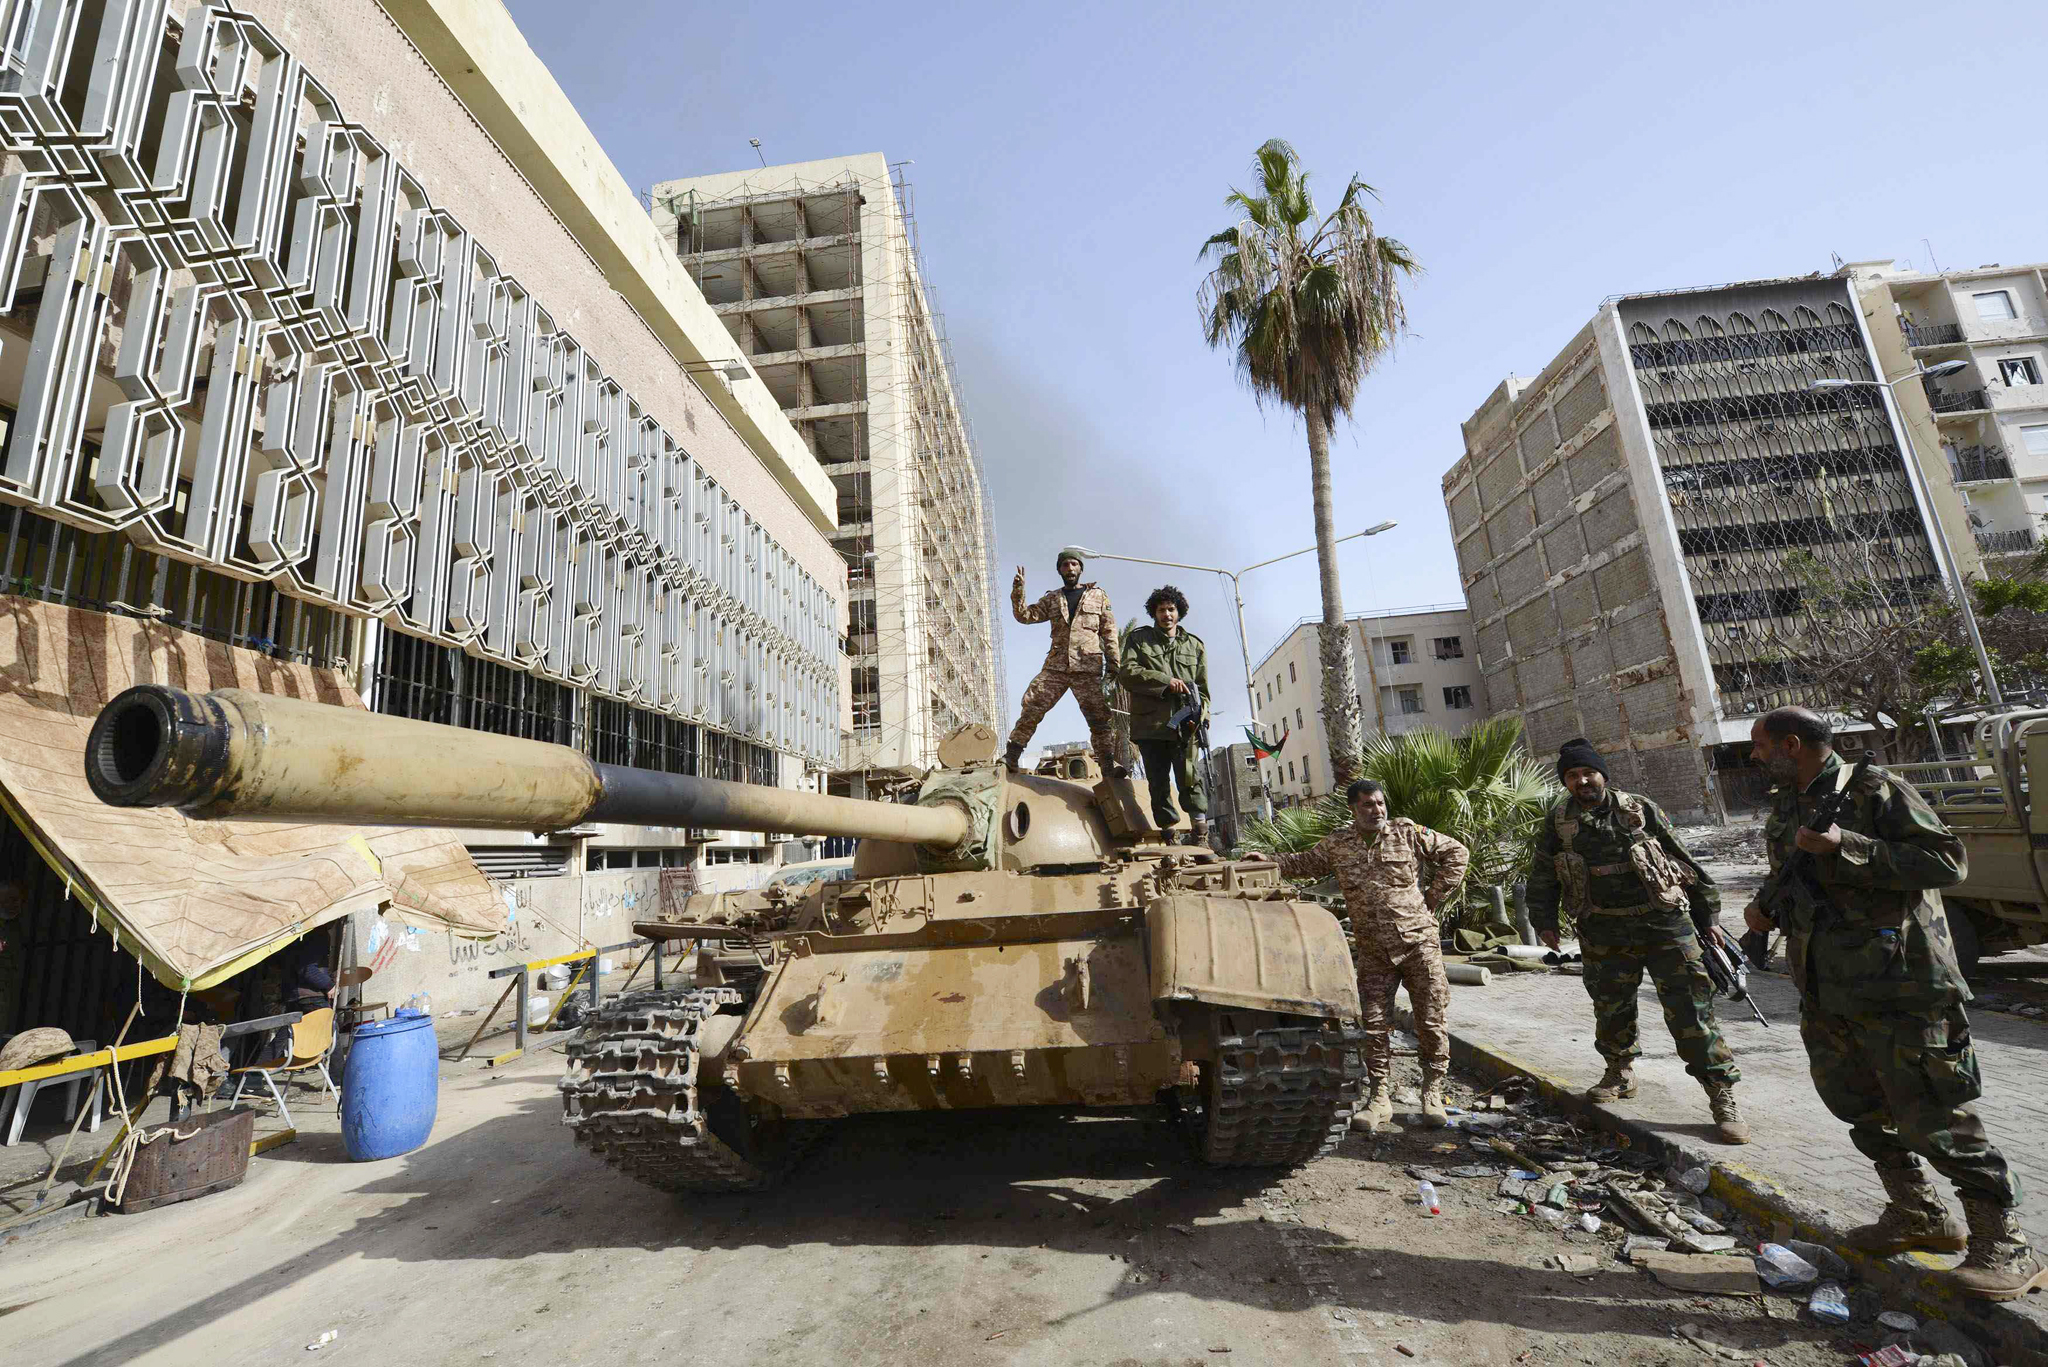 Members of the Libyan pro-government forces, backed by locals, gather on a tank outside the Central Bank, near Benghazi port...Members of the Libyan pro-government forces, backed by locals, gather on a tank outside the Central Bank, near Benghazi port, January 21, 2015. The area has been the scene of heavy battles for weeks against the Shura Council of Libyan Revolutionaries, an alliance of ex anti-Gaddafi rebels, who have joined forces with Islamist group Ansar al-Sharia A parliament set up in Libya to rival the elected assembly has suspended U.N.-sponsored peace talks because of what it called fresh violence from the country's recognized government, a spokesman said on Wednesday.  REUTERS/Esam Omran Al-Fetori (LIBYA - Tags: CIVIL UNREST POLITICS)